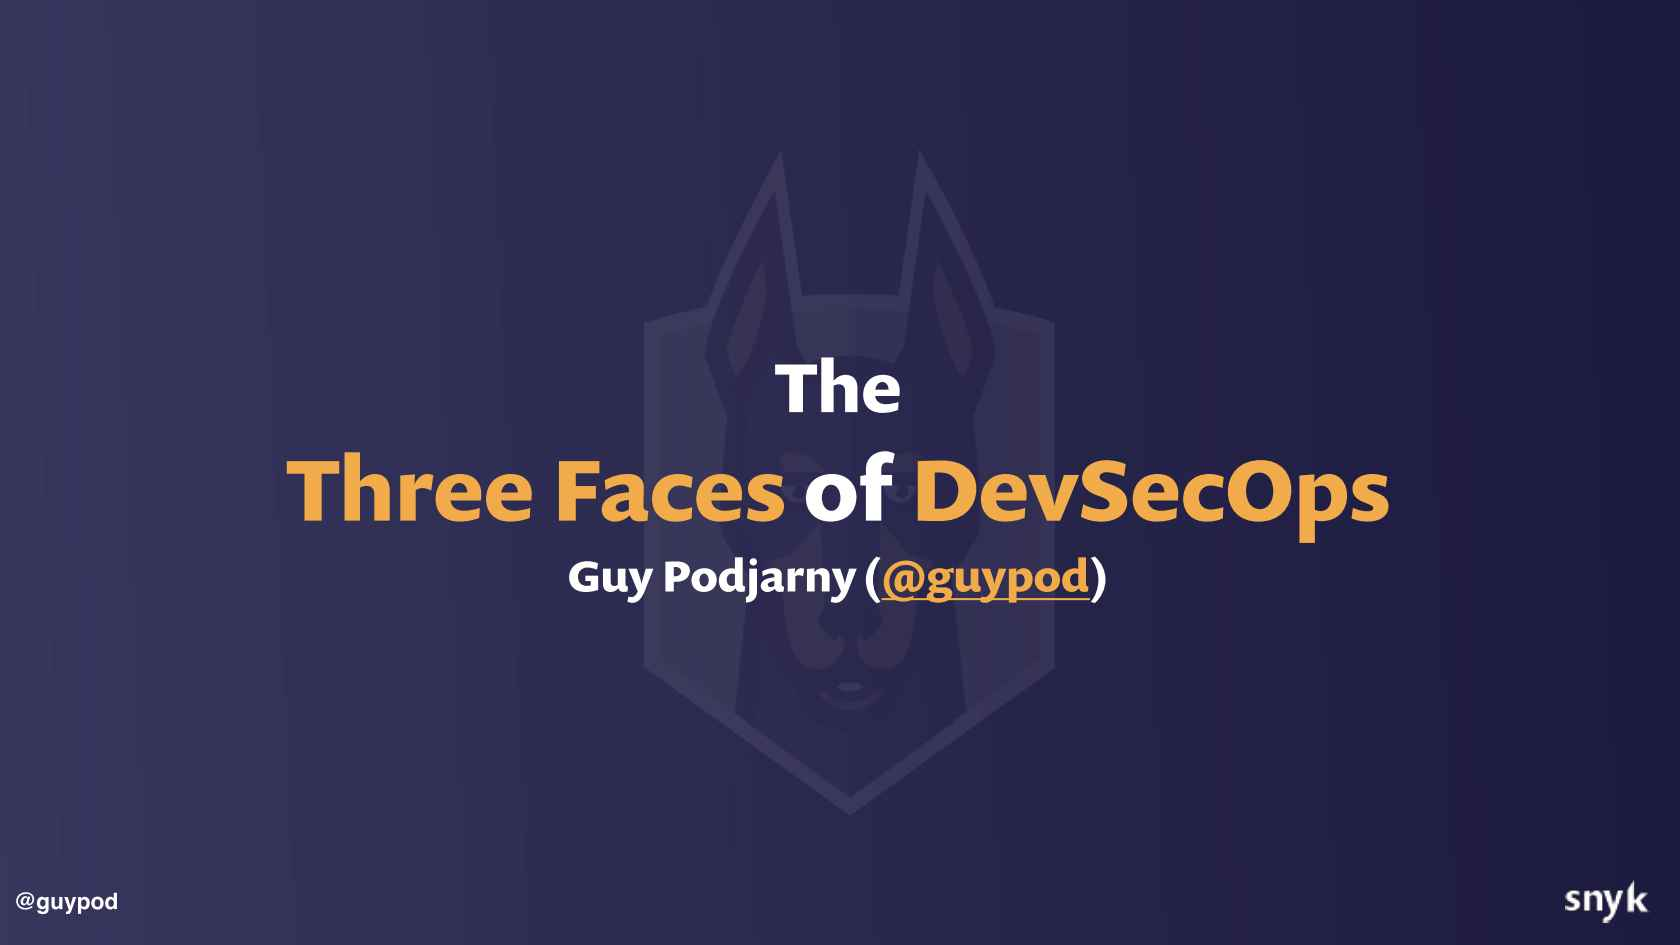 The Three Faces of DevSecOps